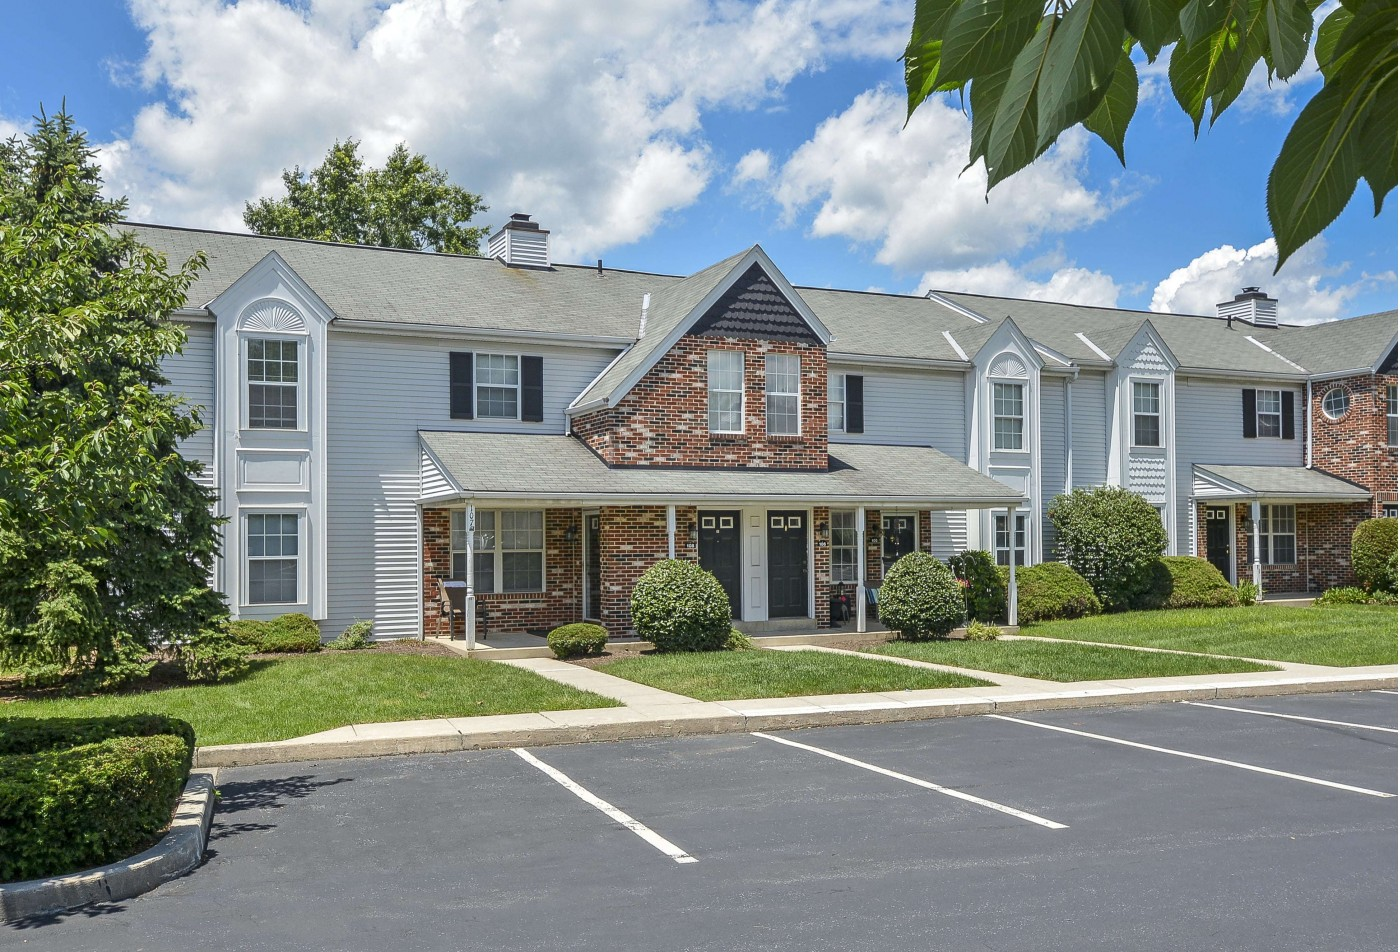 Apartments For Rent In Wyomissing PA | Victoria Crossing Apartments